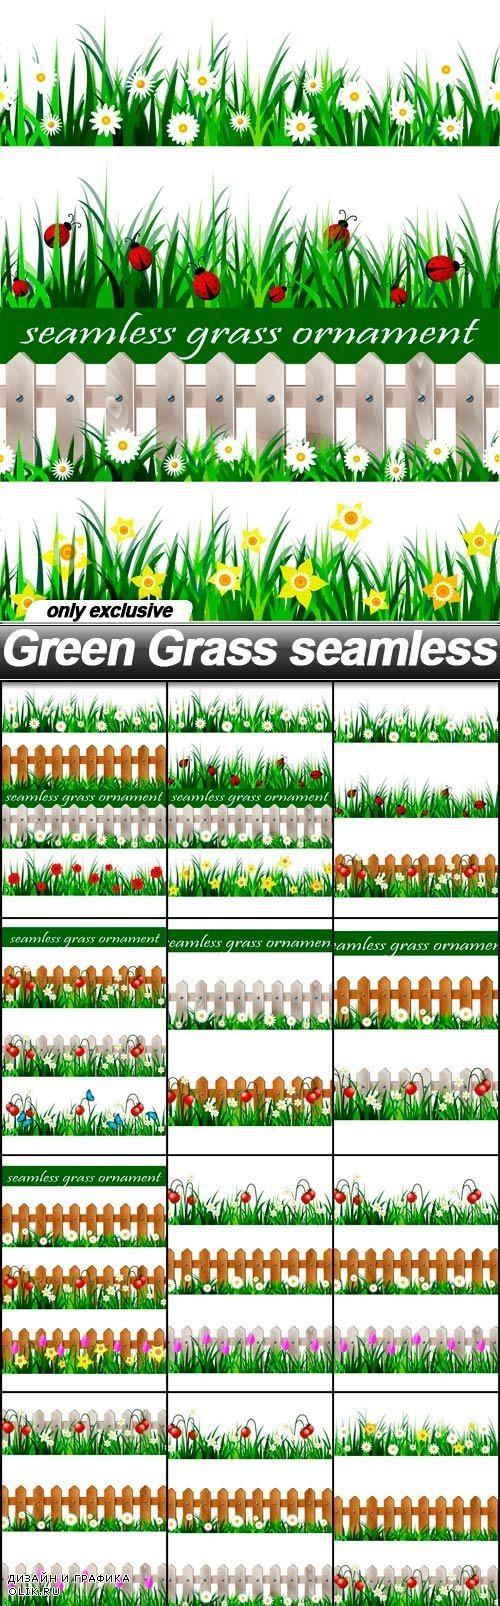 Green Grass seamless - 22 EPS